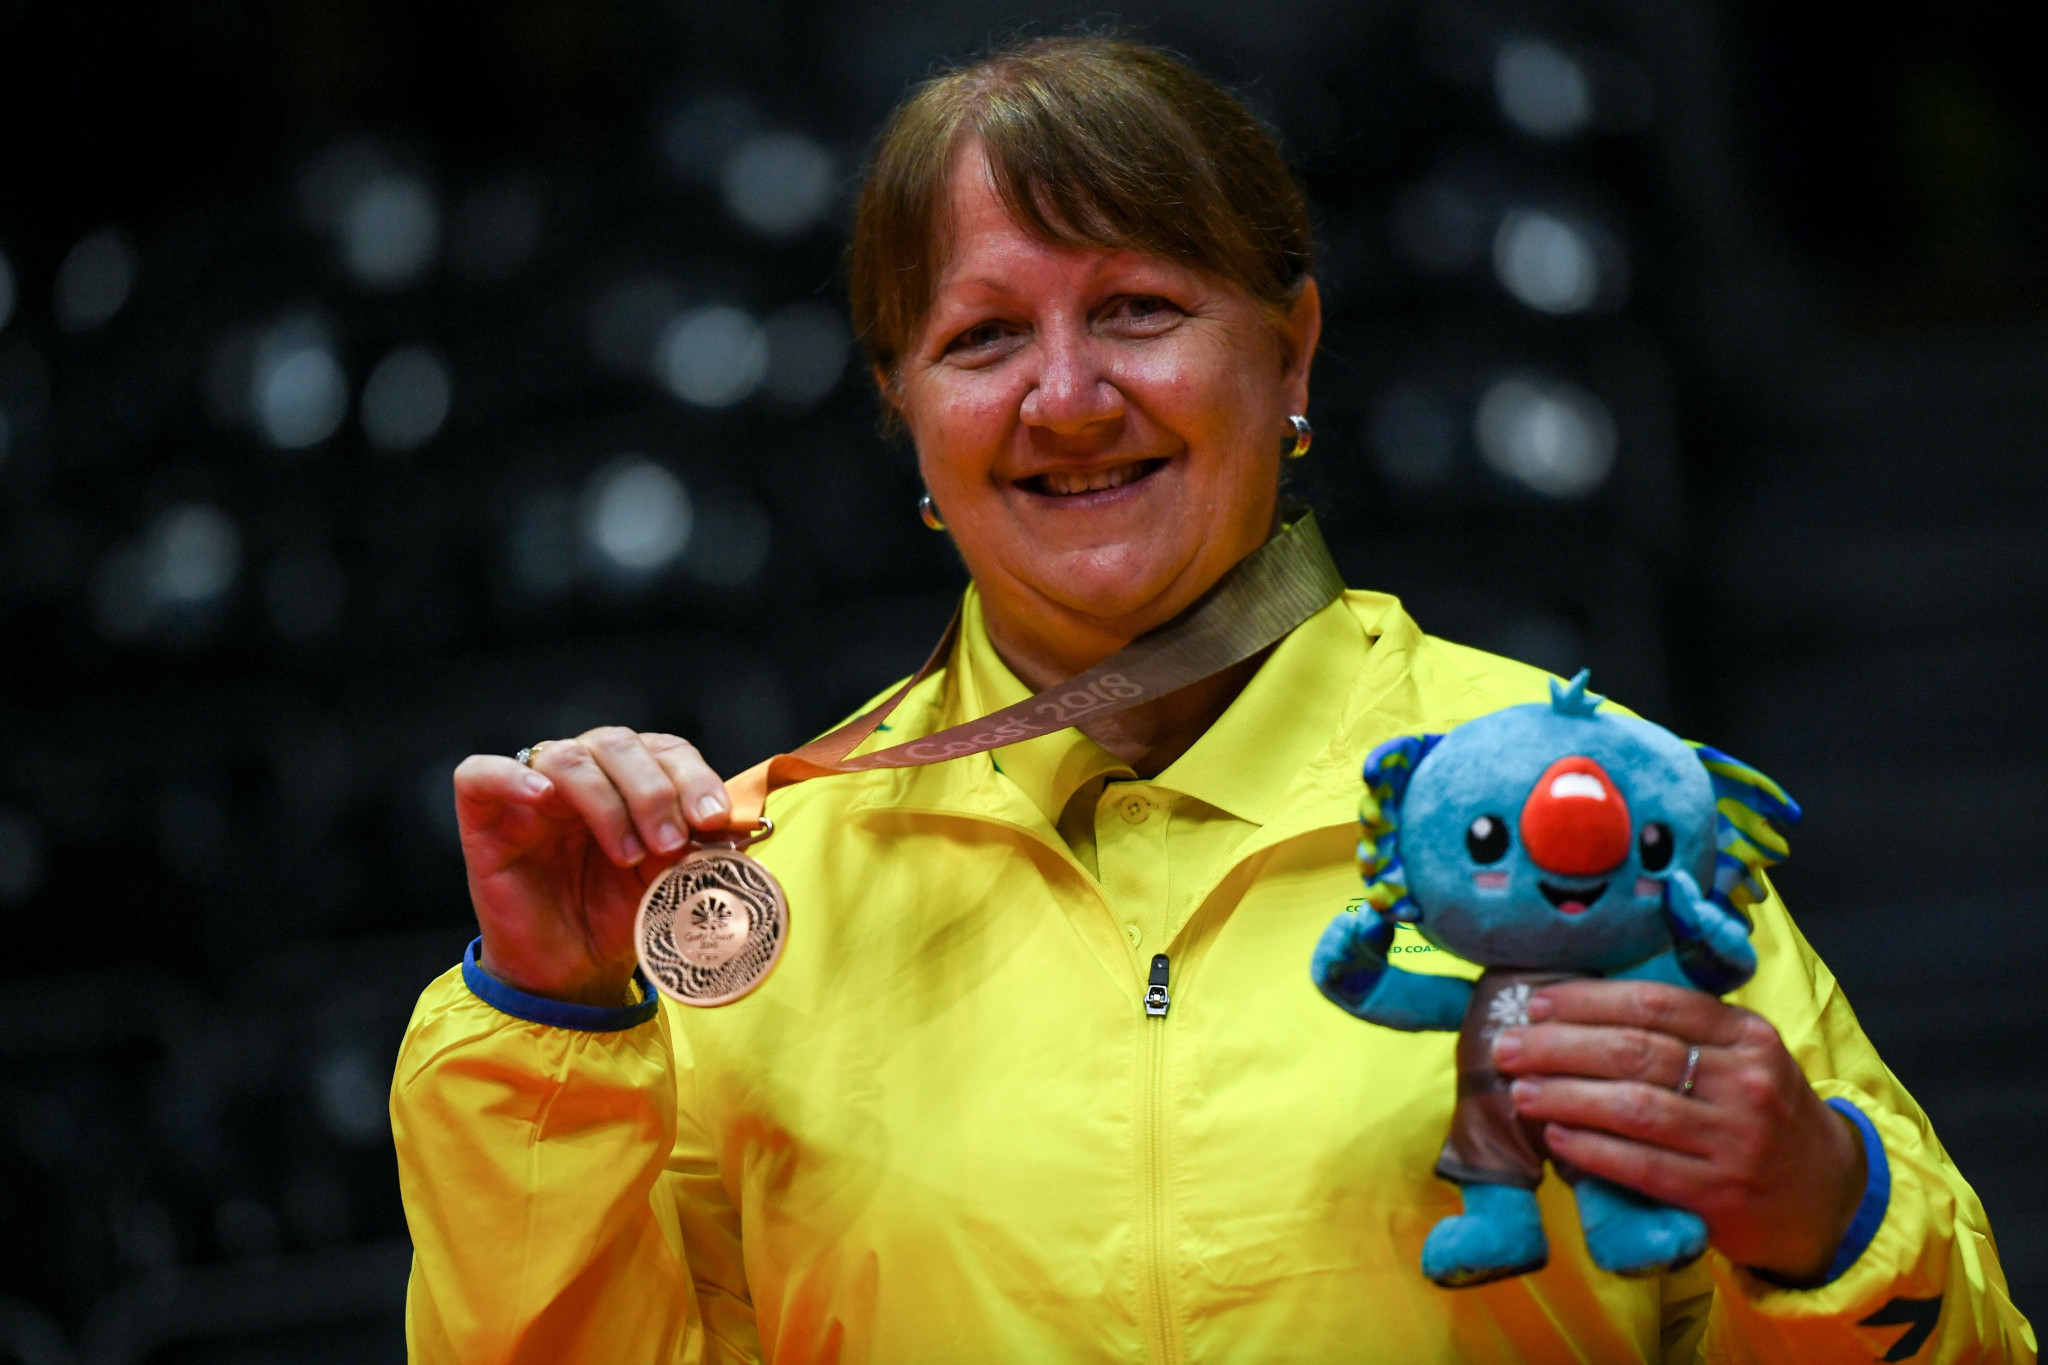 Commonwealth Games bronze medallist McDonnell announces retirement from Para-table tennis